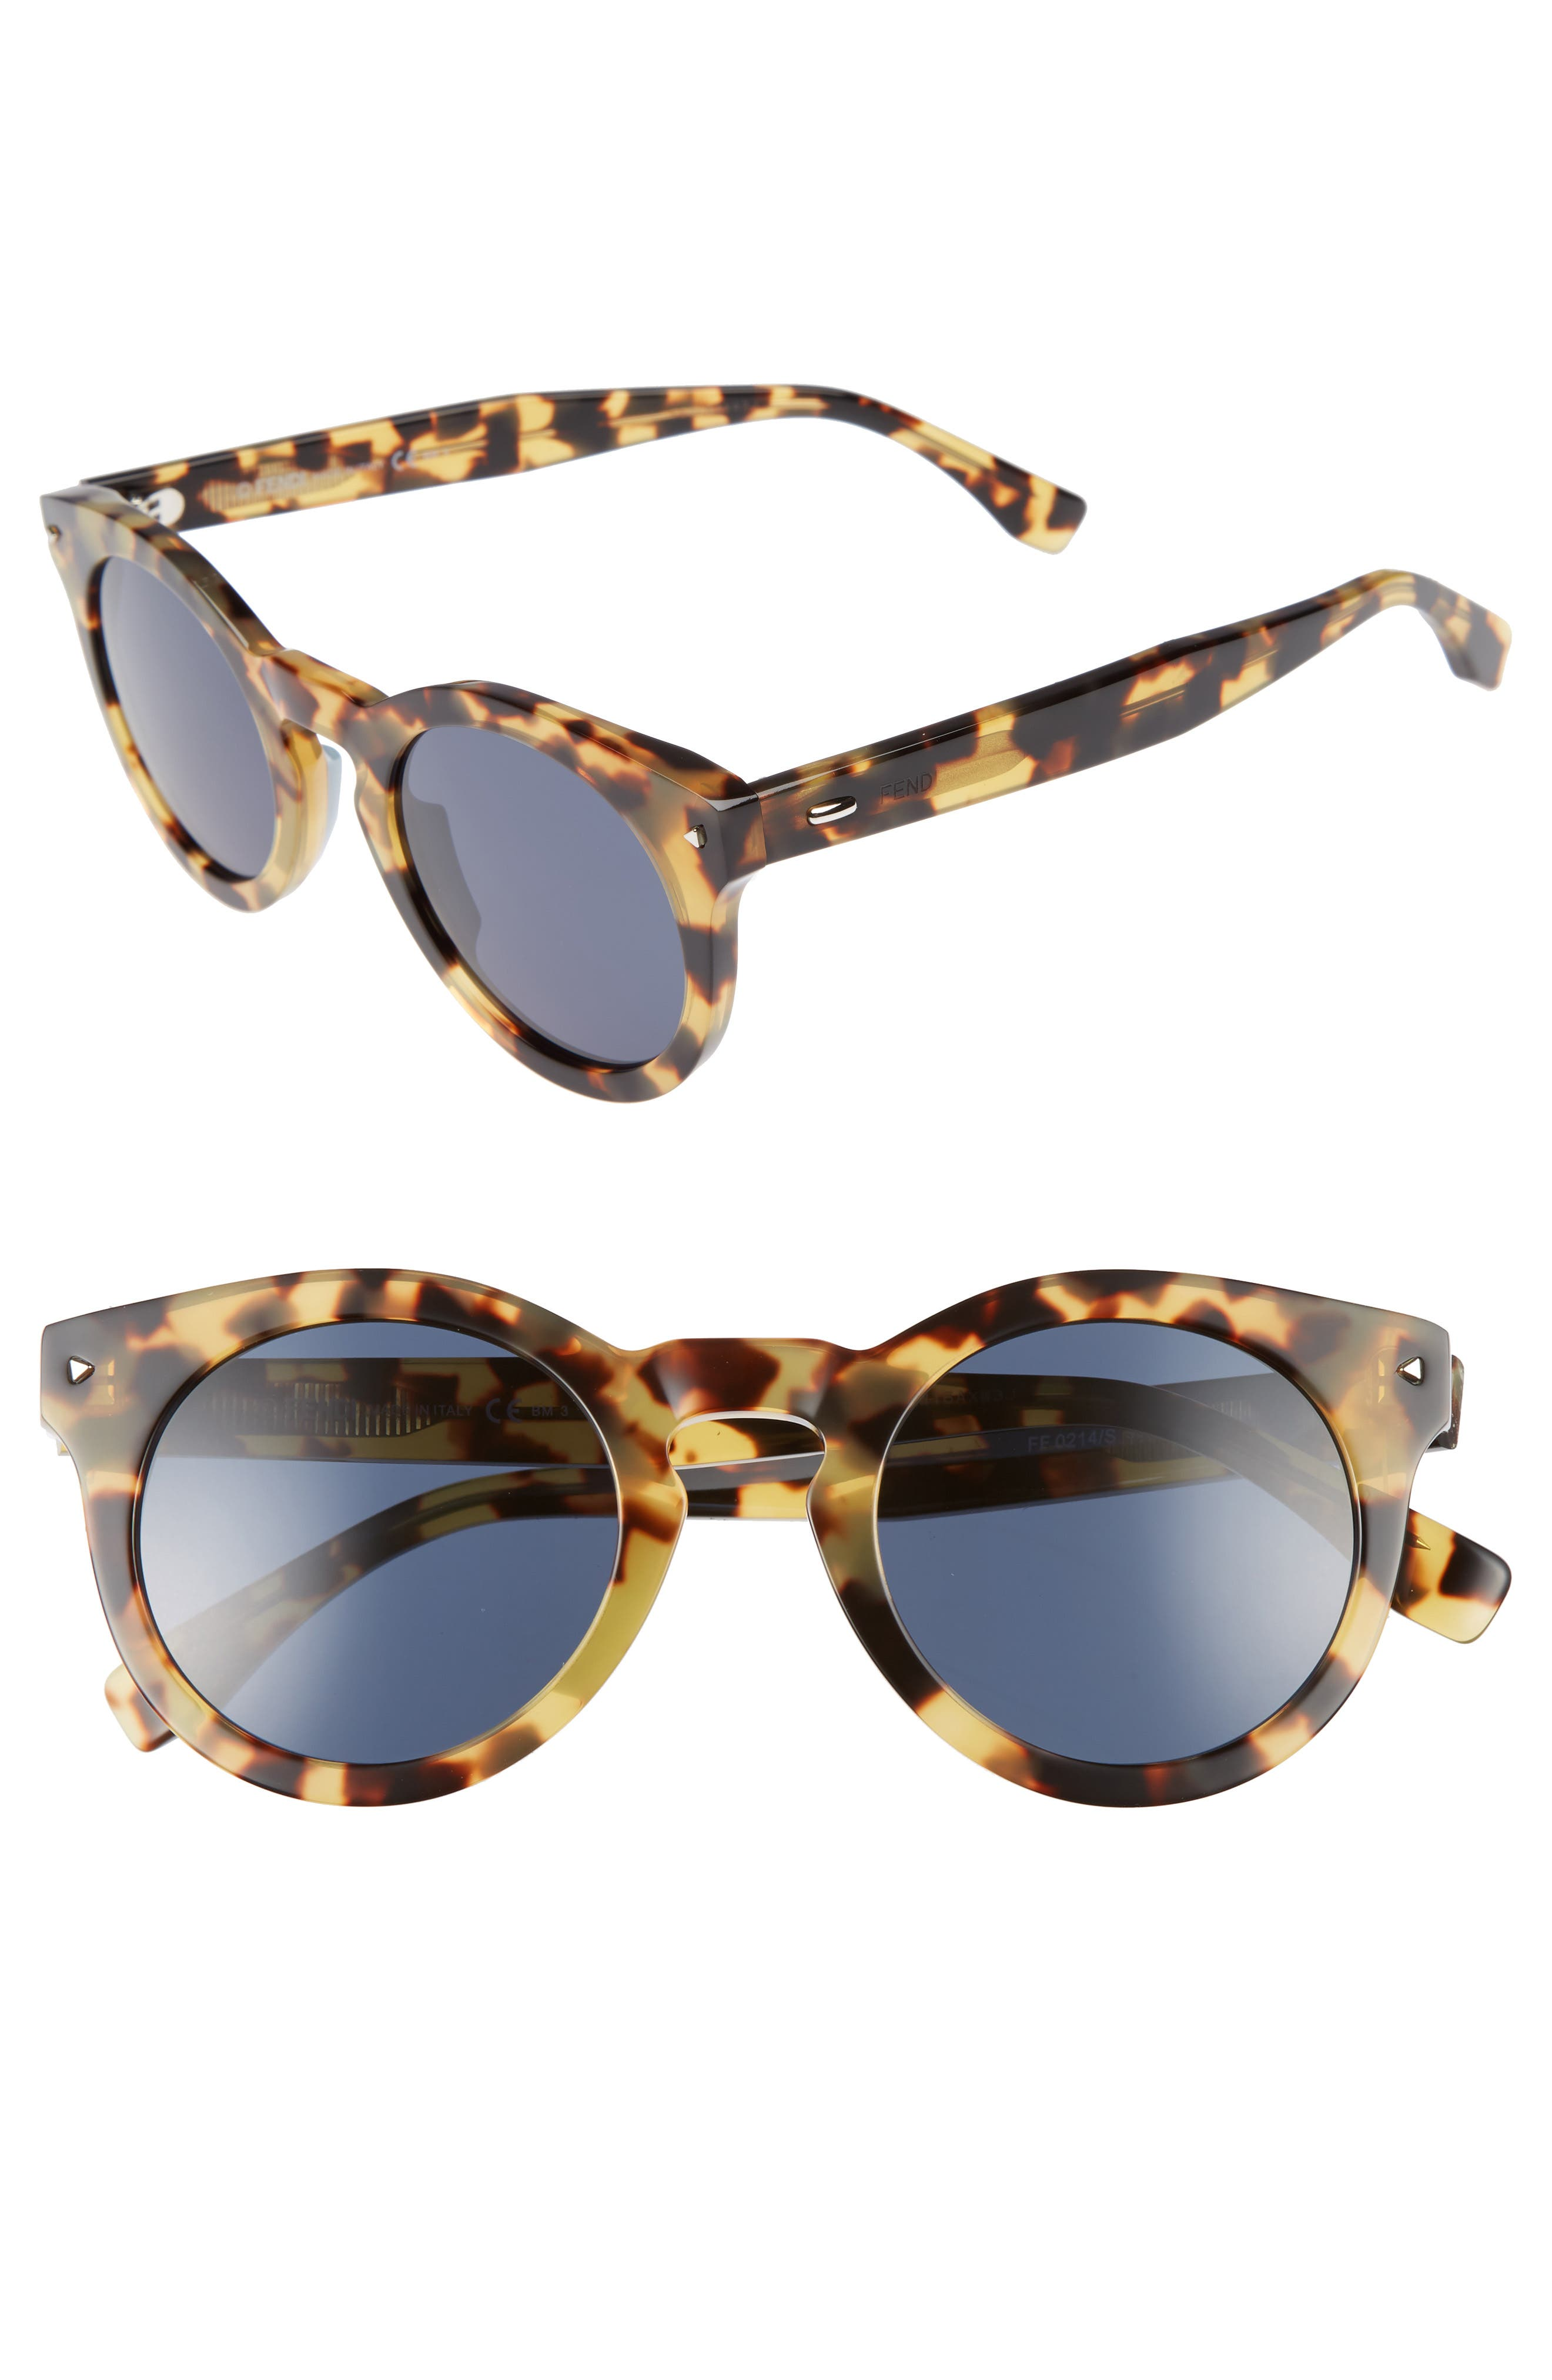 Fendi 48mm Sunglasses